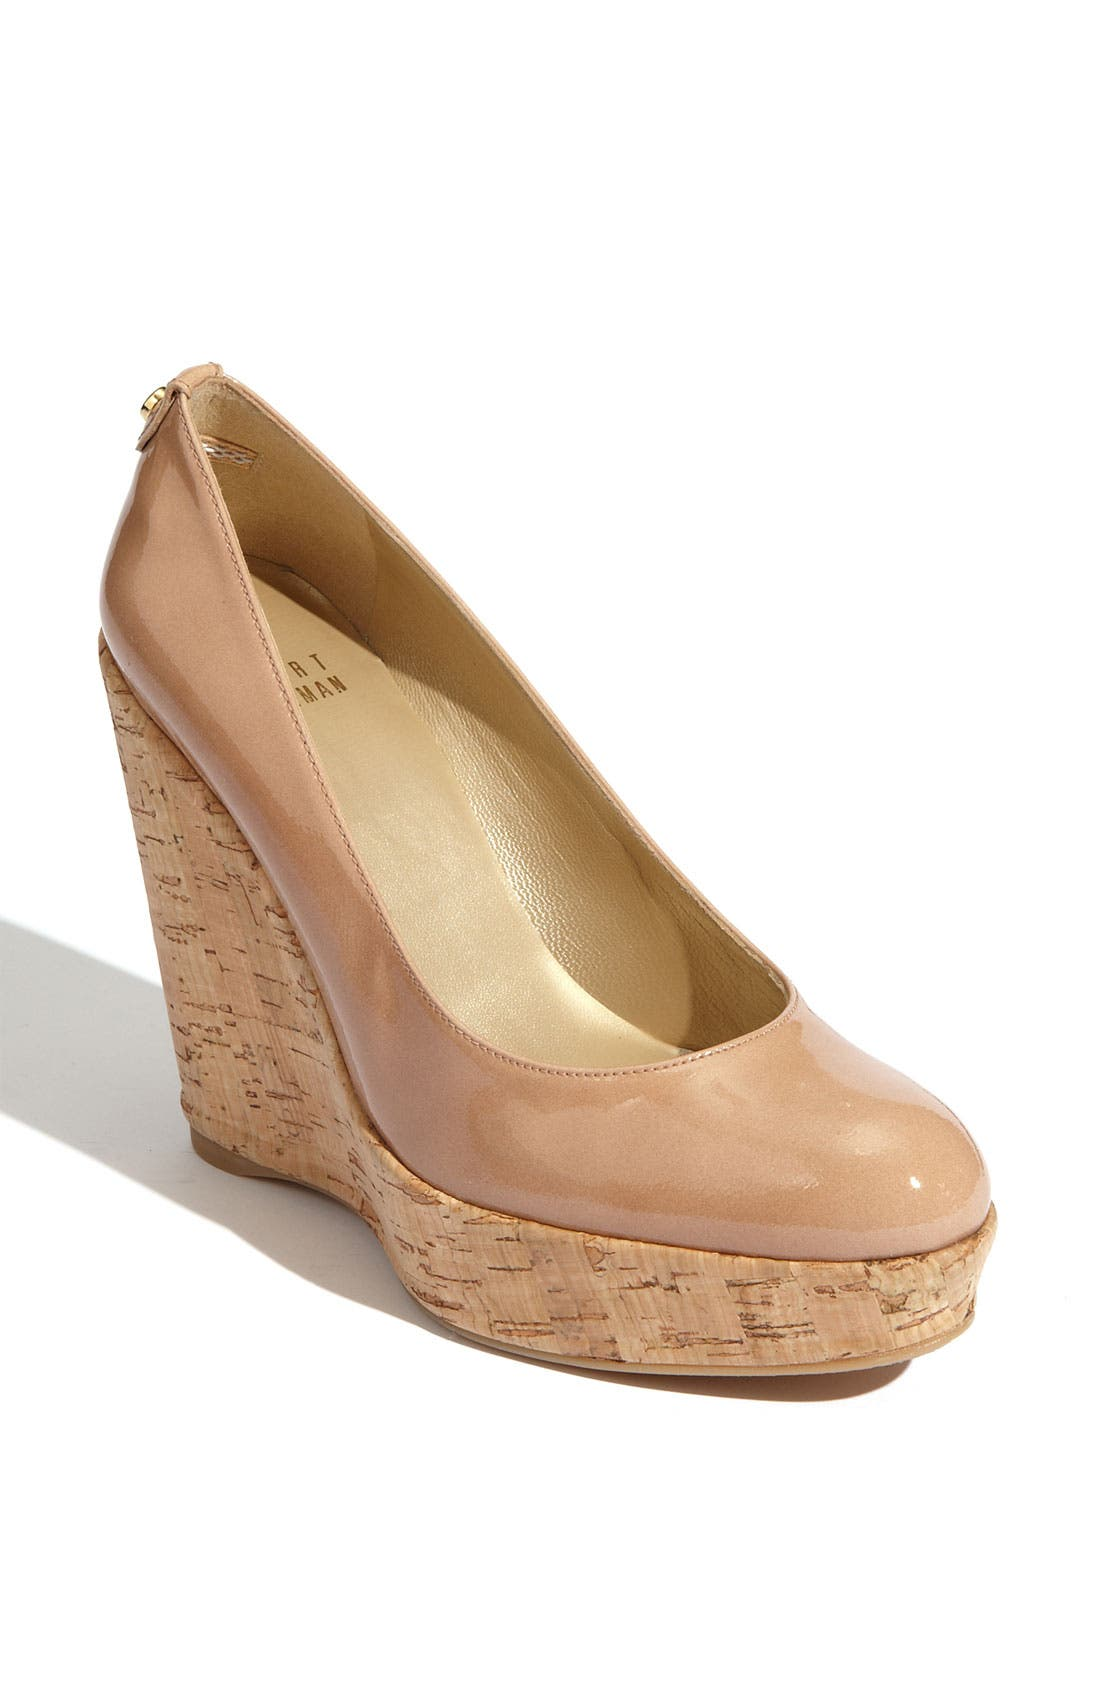 Main Image - Stuart Weitzman 'Corkswoon' Wedge